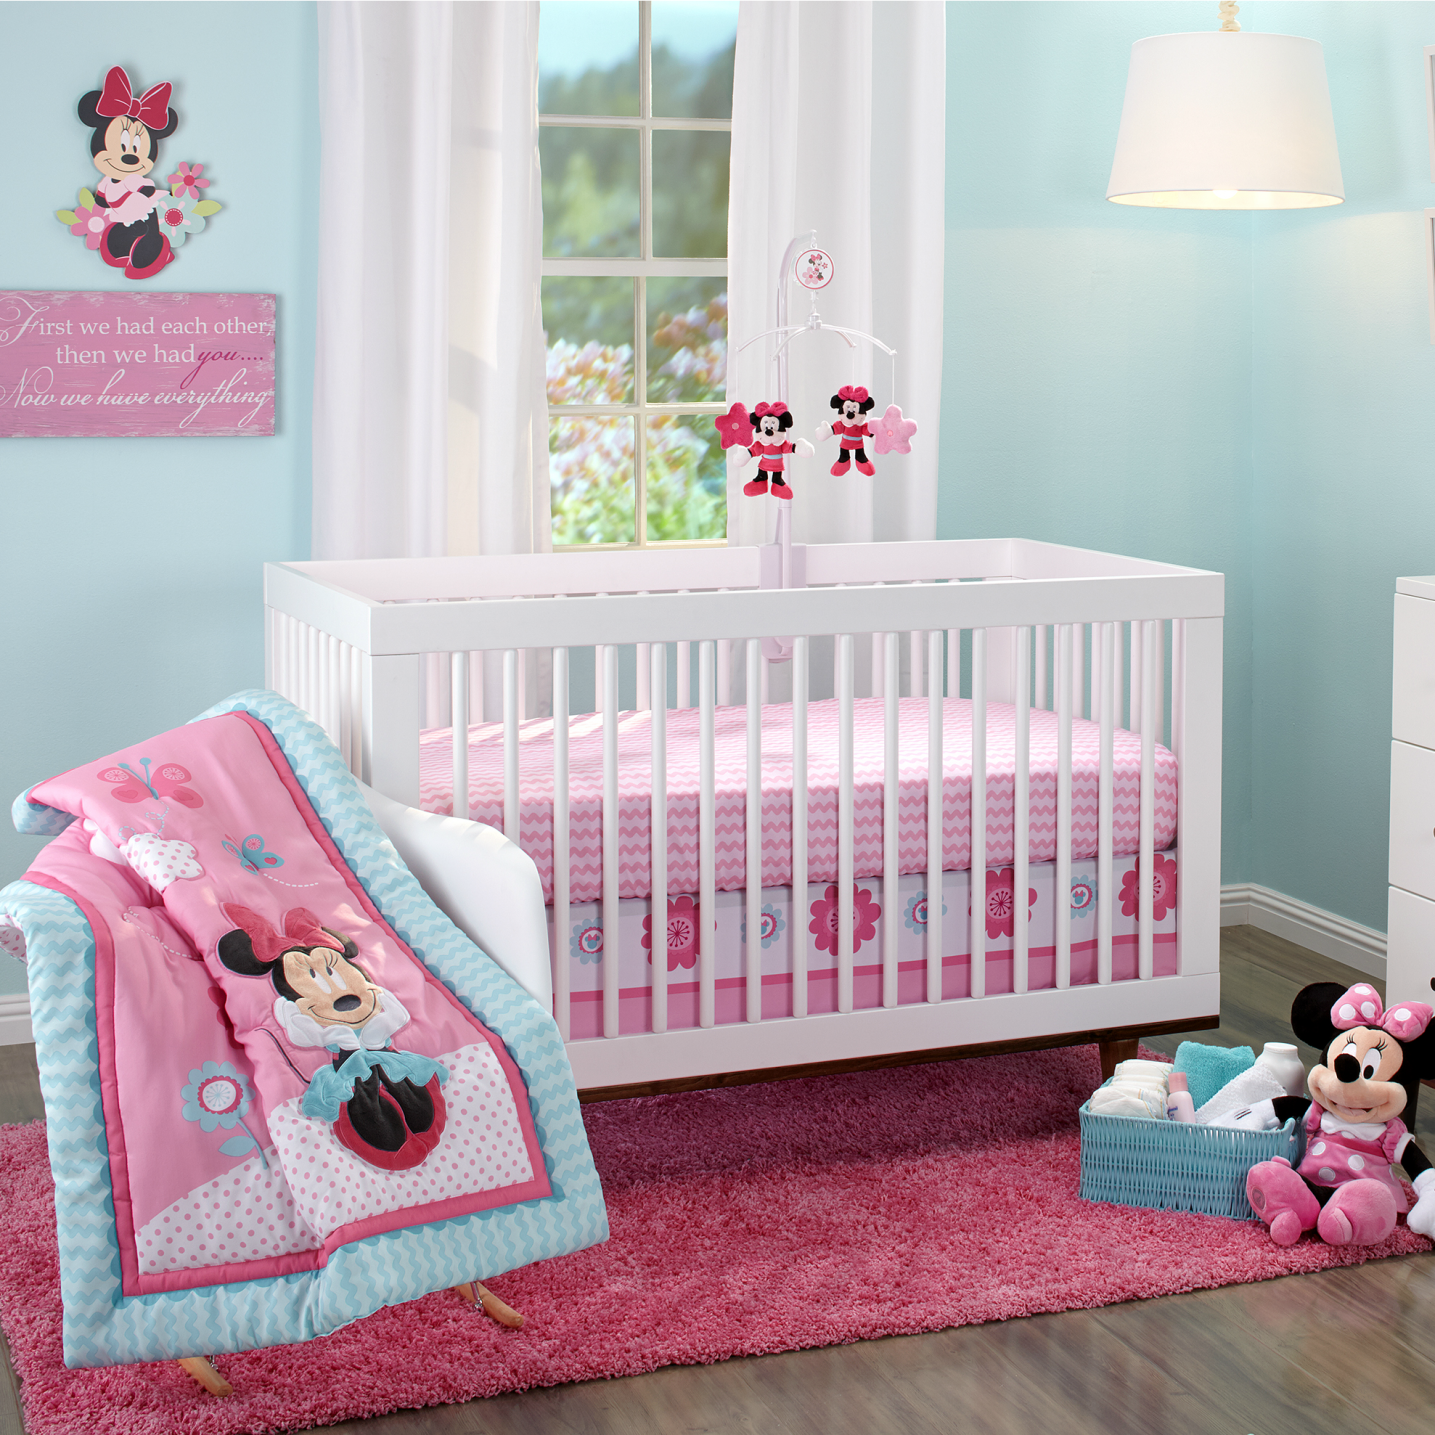 20 Minnie Mouse Baby Room Best Quality Furniture Check more at